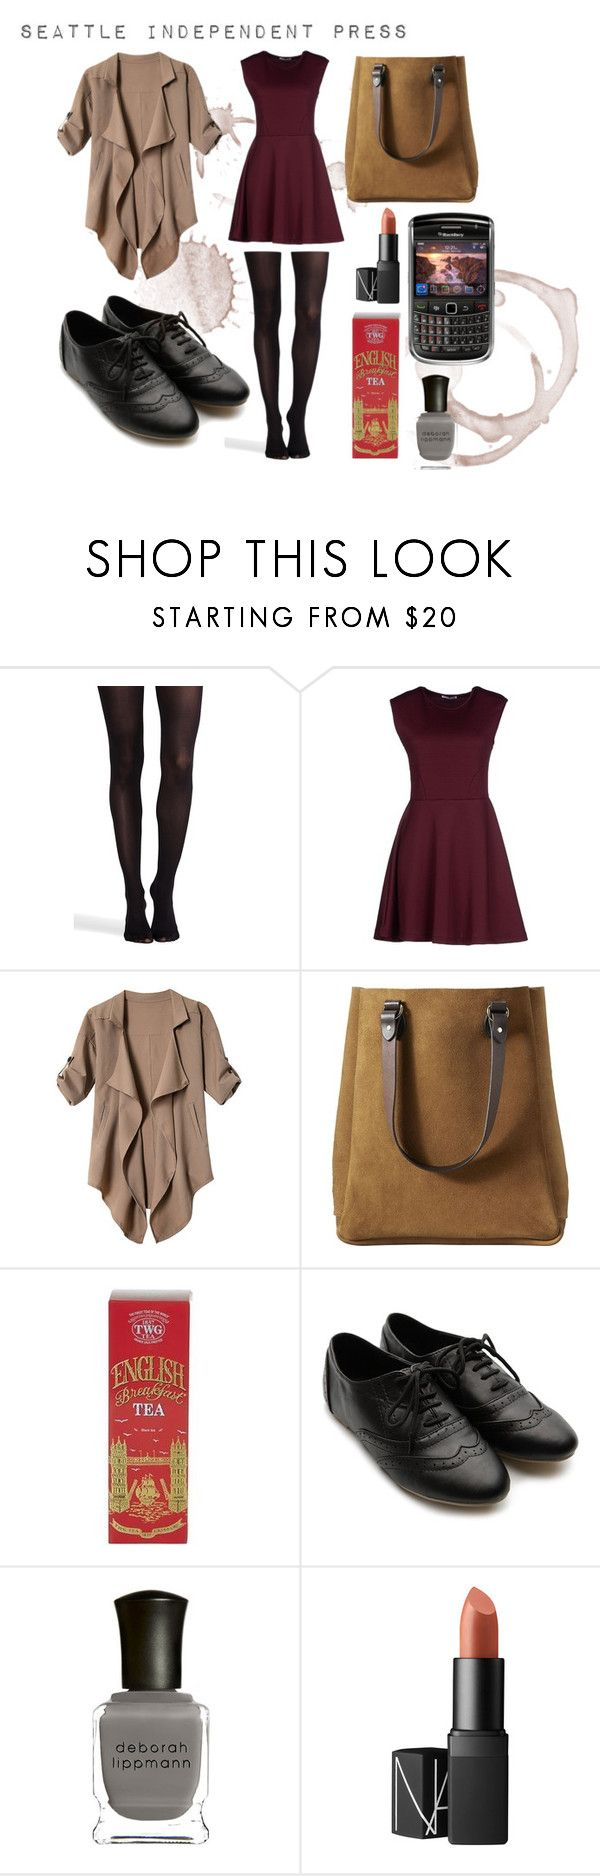 """Anastasia Steele Look"" by alyssamg97 on Polyvore featuring SPANX, Hope Collection, Filson, TWG Tea Company, Ollio, Deborah Lippmann and NARS Cosmetics"